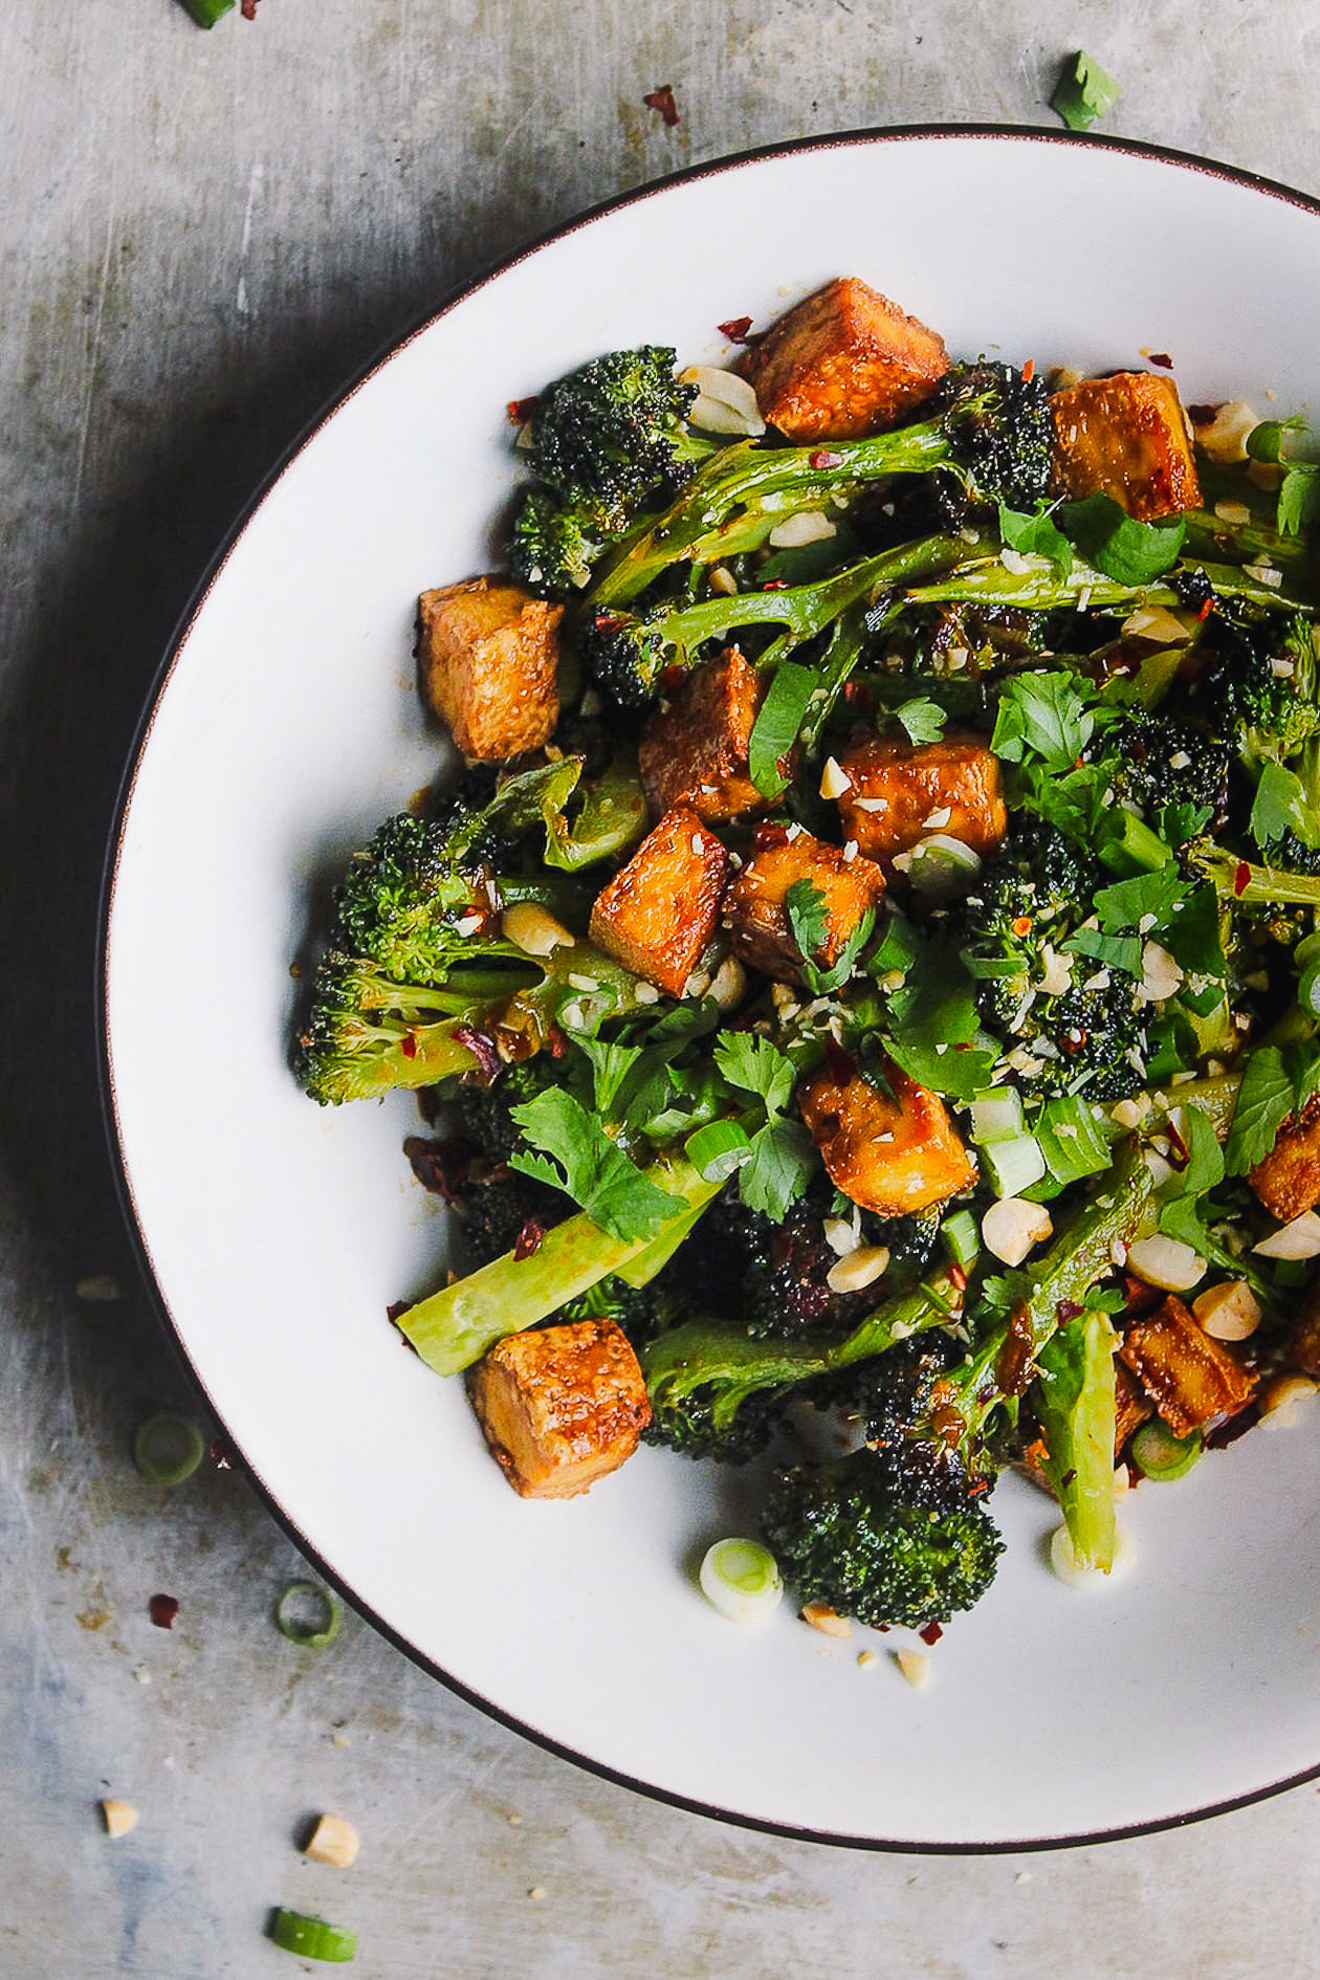 Crispy Baked Tofu Broccoli Bowl with Blood Orange Sauce